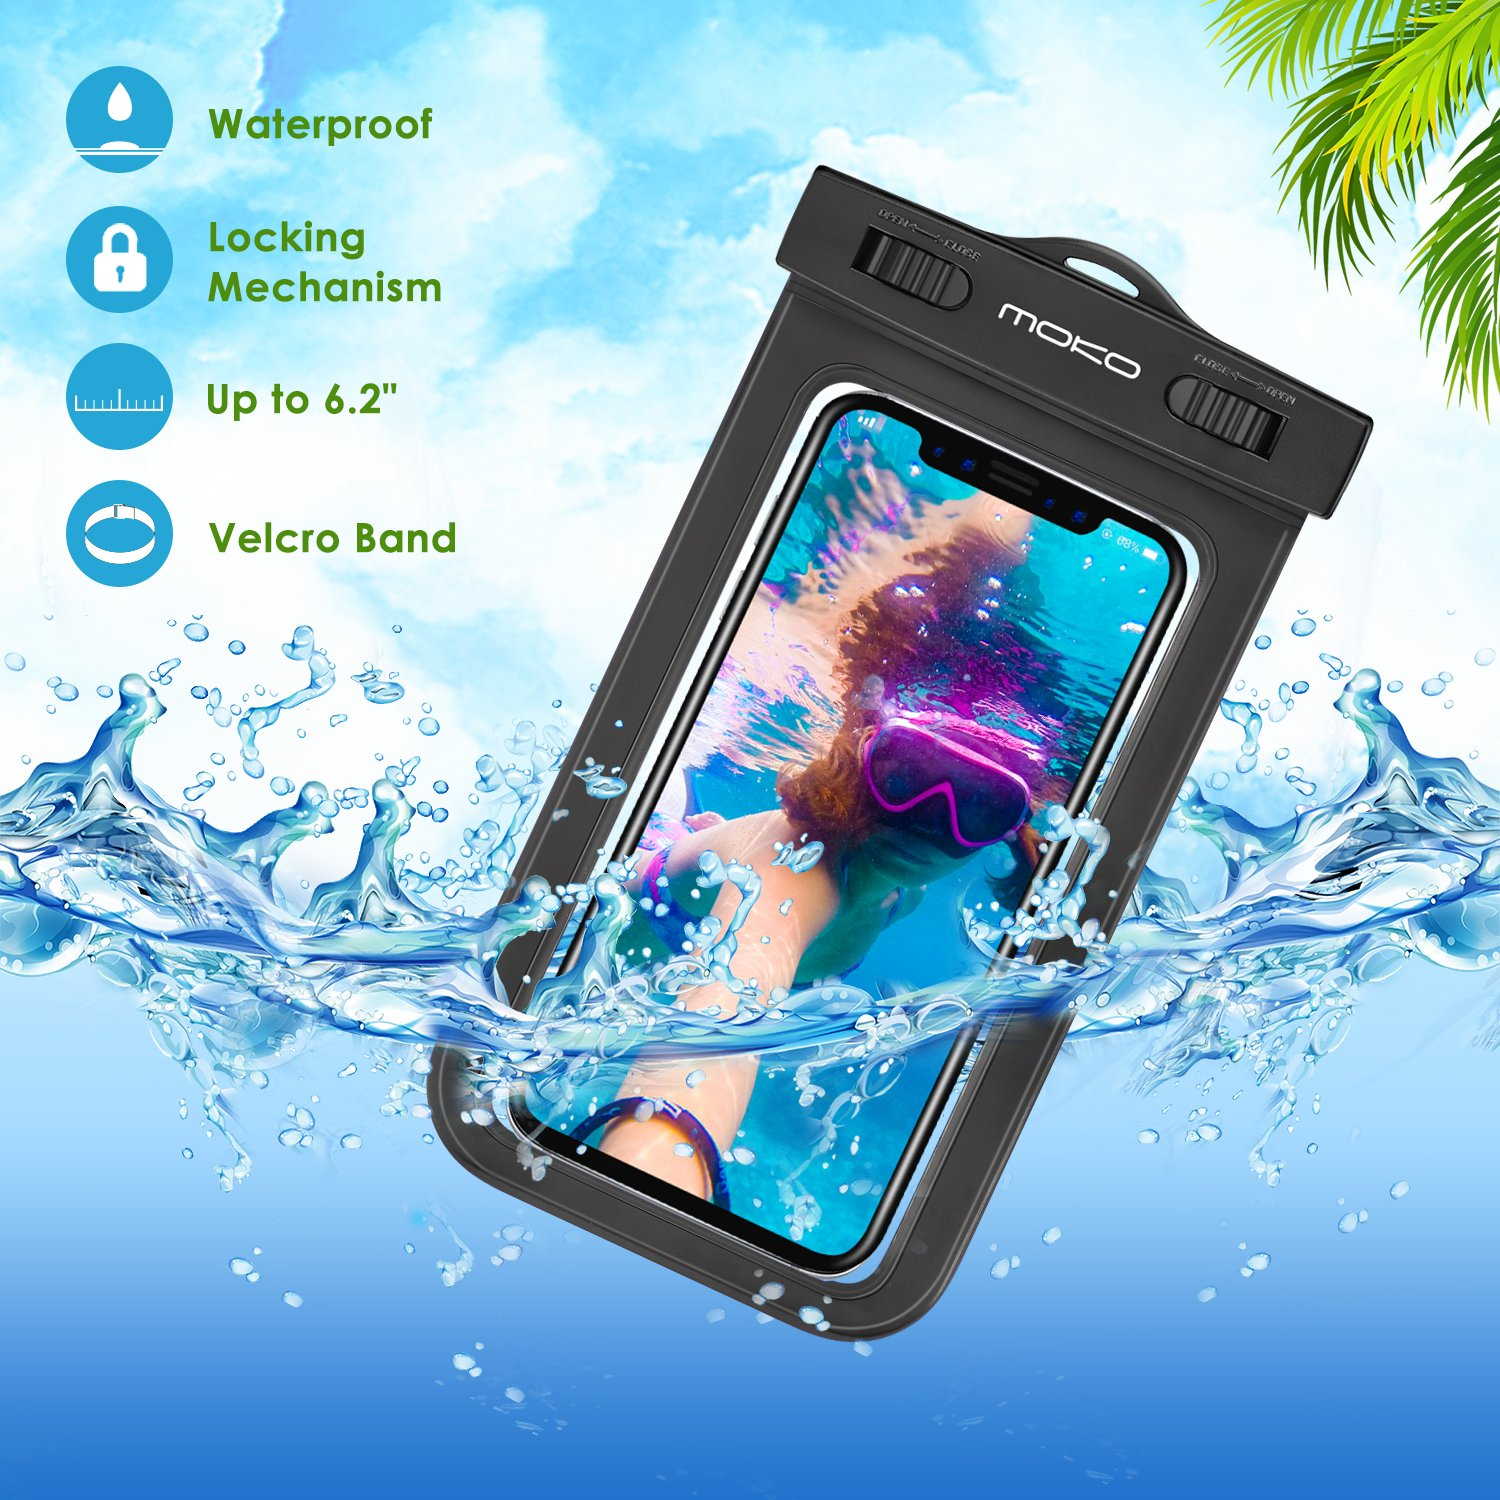 MoKo Waterproof Phone Pouch, Underwater Waterproof Cellphone Case Dry Bag with Lanyard Armband Compatible with iPhone X/Xs/Xr/Xs Max, 8/7/6s Plus, Samsung Galaxy S10/S9/S8 Plus, S10 e, S7 Edge, Black by MoKo (Image #3)